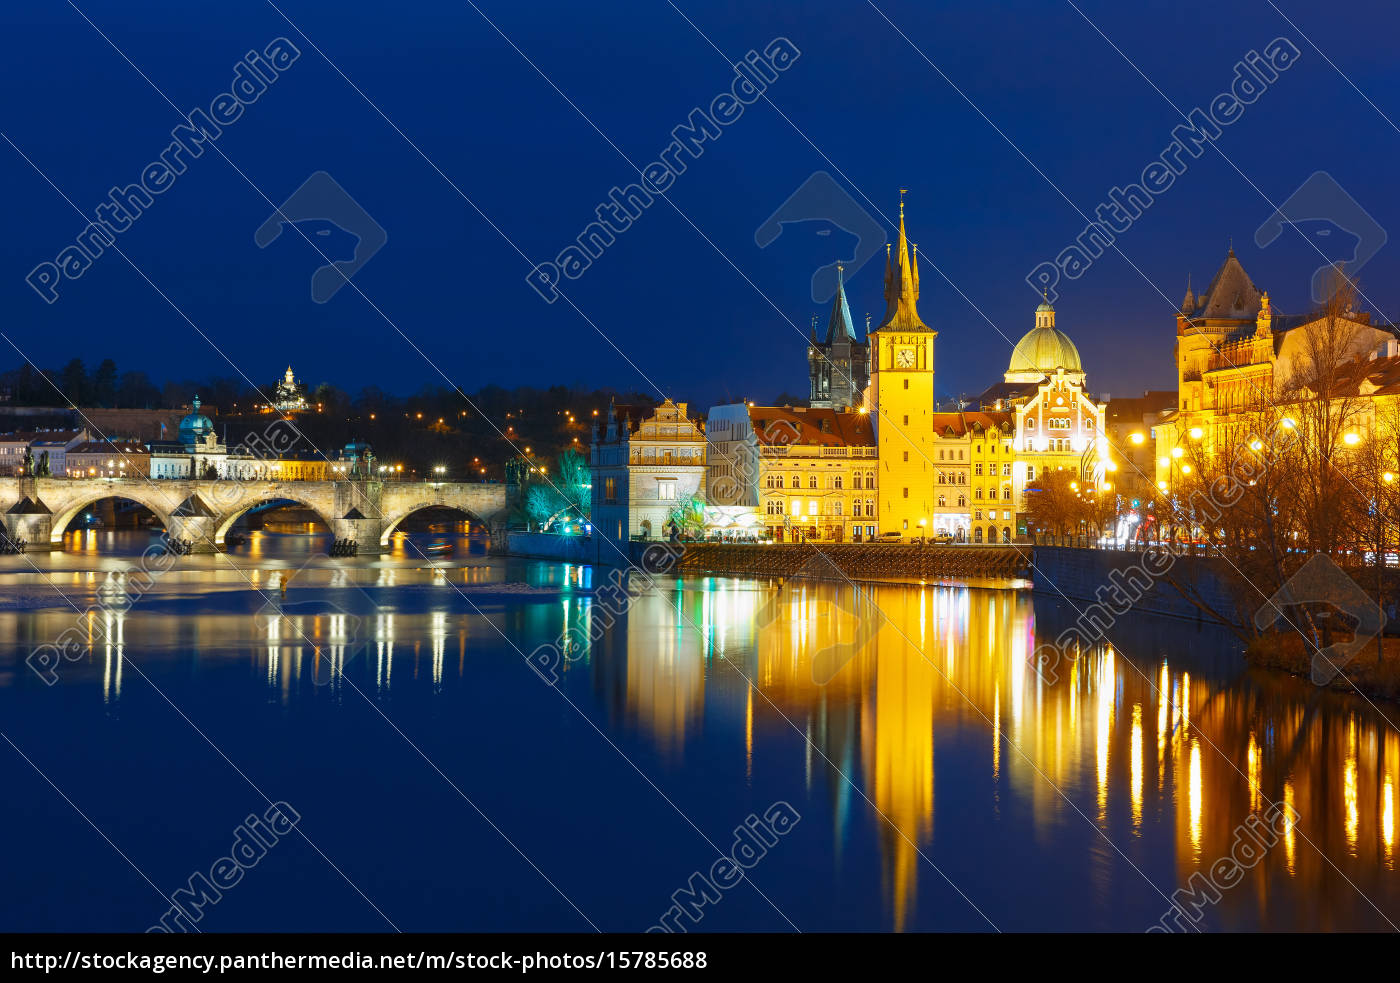 vltava, river, and, old, town, at - 15785688